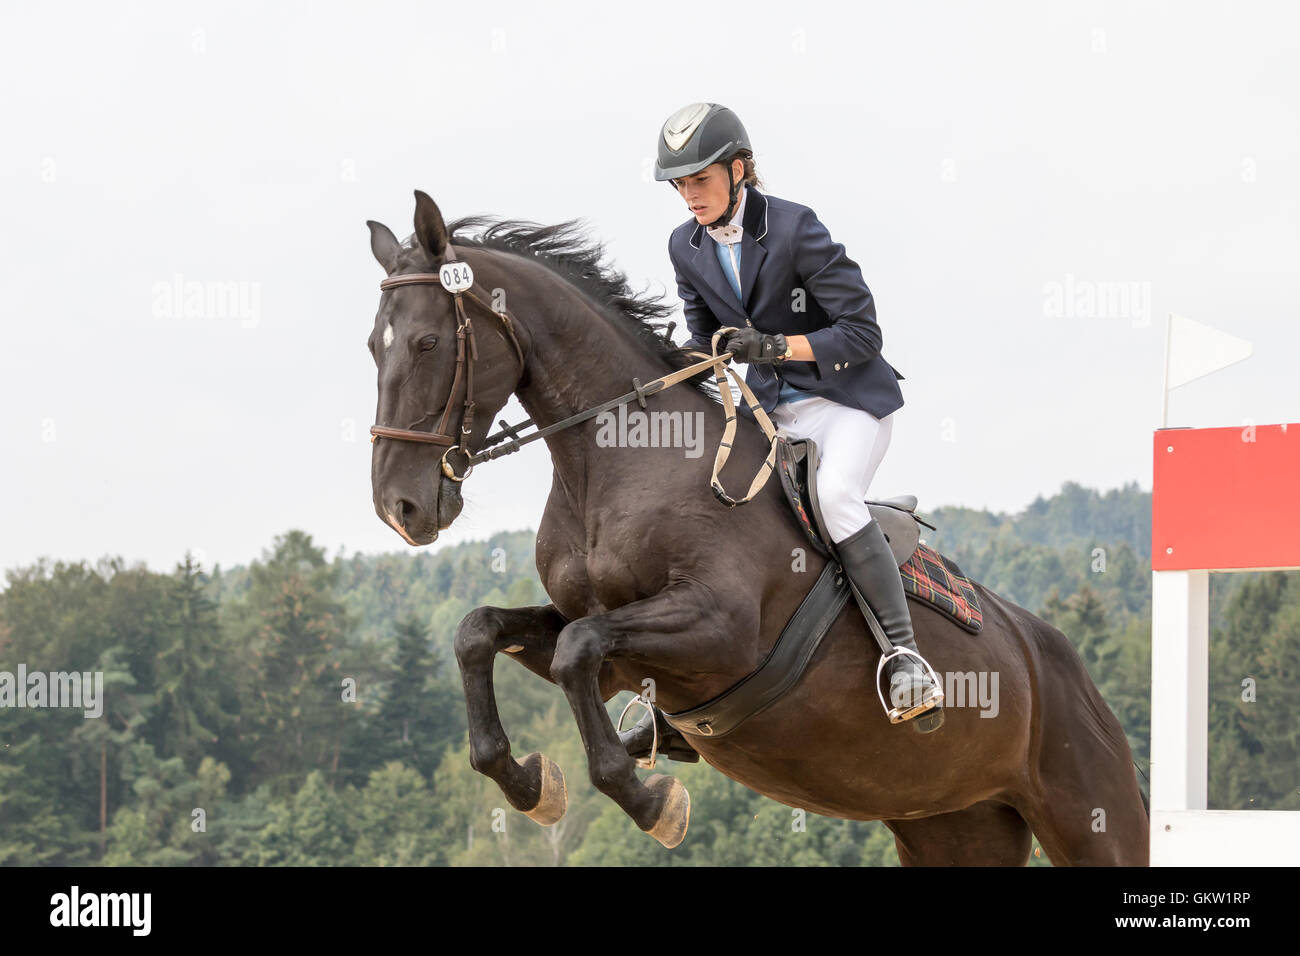 Closeup view of horsewoman in jump on a dark horse Stock Photo